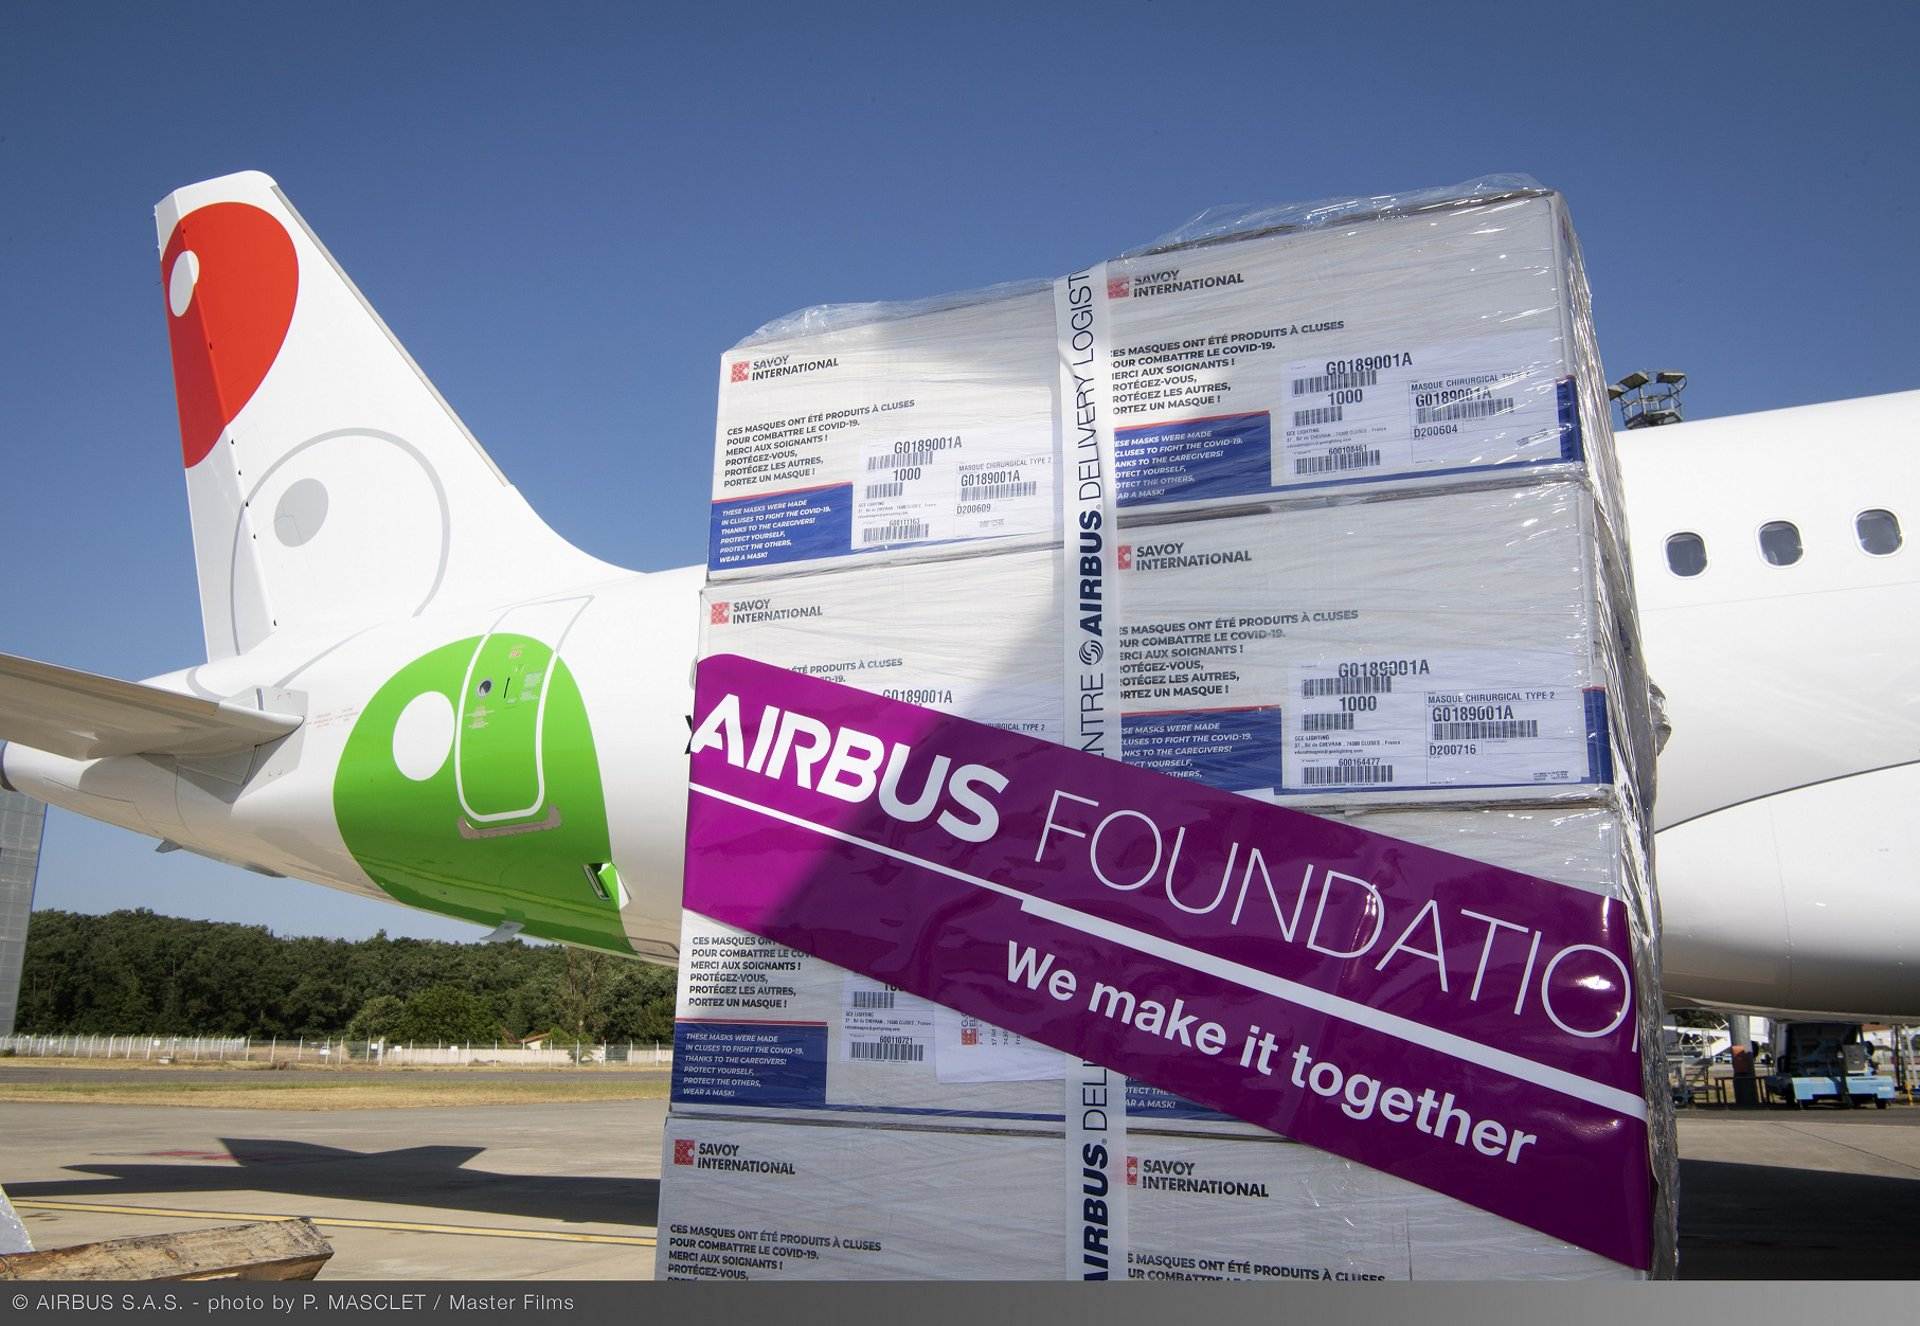 The Airbus Foundation, Viva Aerobus and Aviation Sans Frontières, will transport surgical masks to be donated to the Red Cross in the Mexican state of Nuevo León. Volaris, the Airbus Foundation and Aviation Sans Frontières will transport surgical masks and face shields to be donated to the Mexican Red Cross in Mexico City. Both airlines will leverage their latest A320neo deliveries originating from Airbus global headquarters in Toulouse.